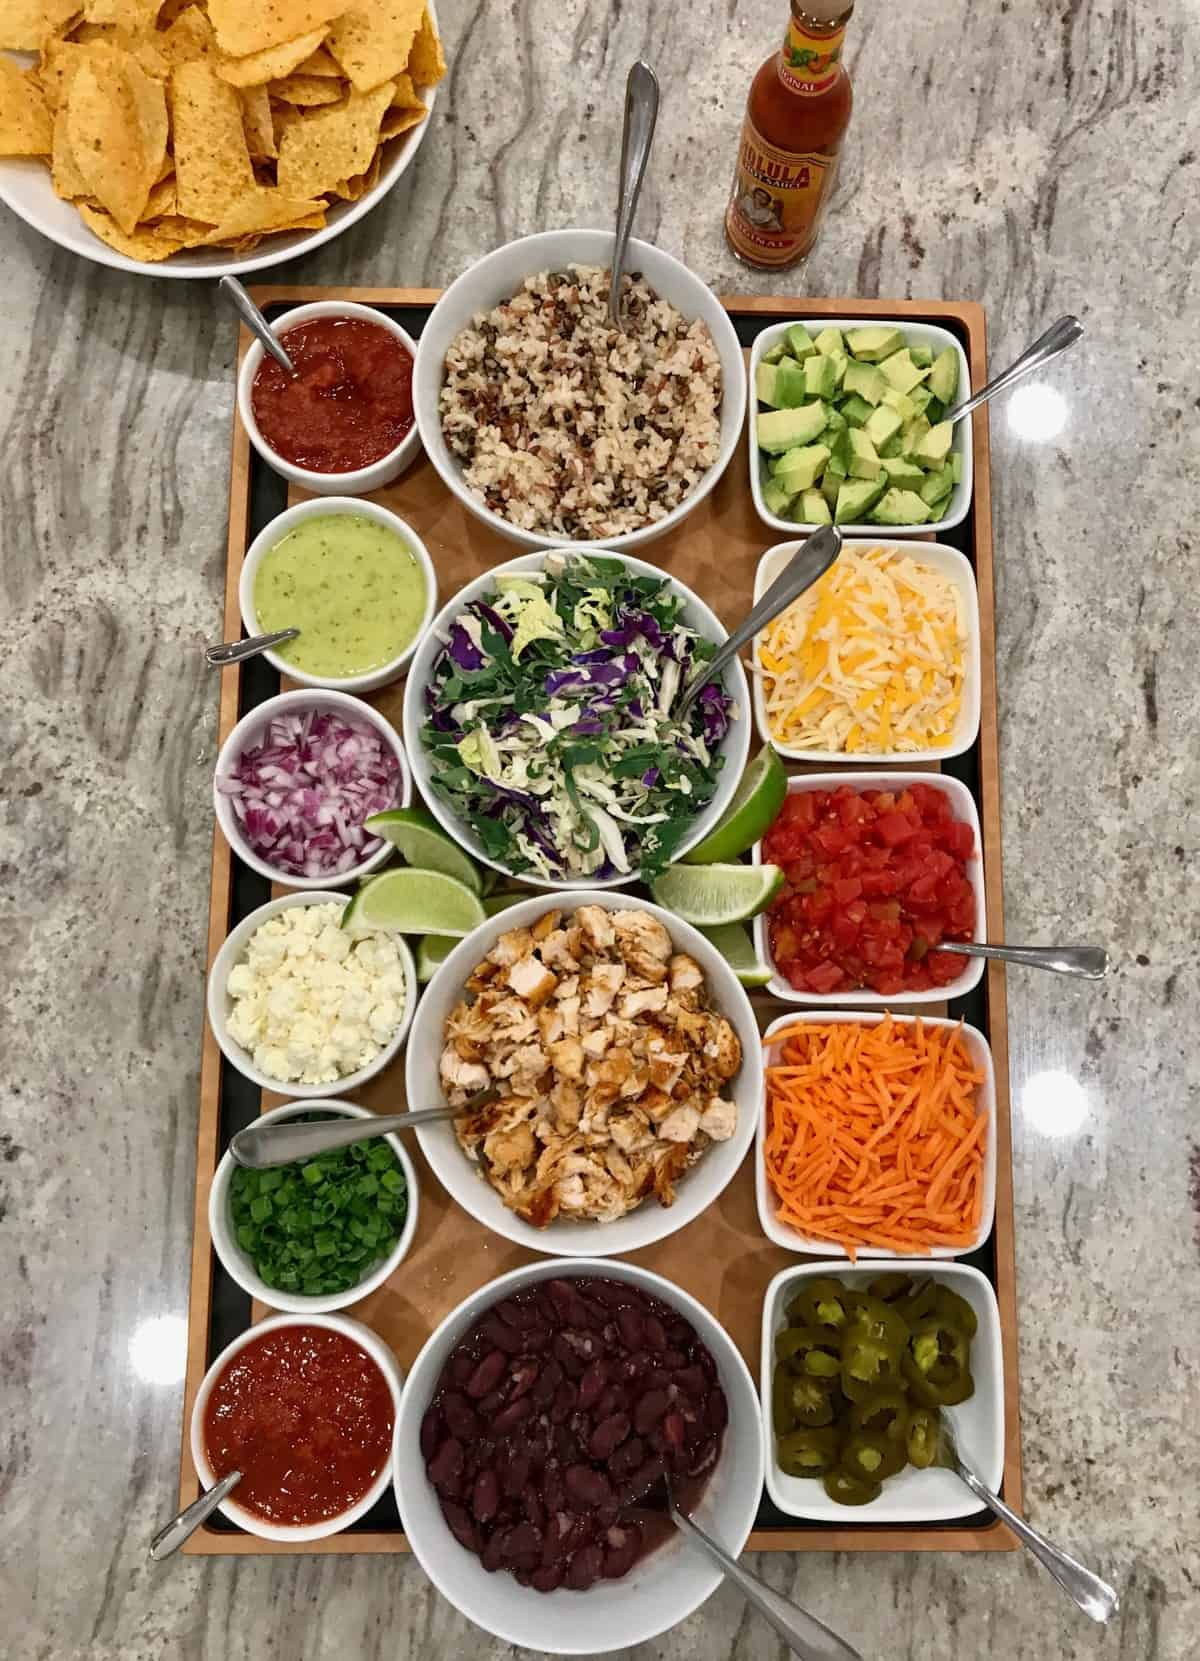 Build-Your-Own Burrito Bowl by The BakerMama